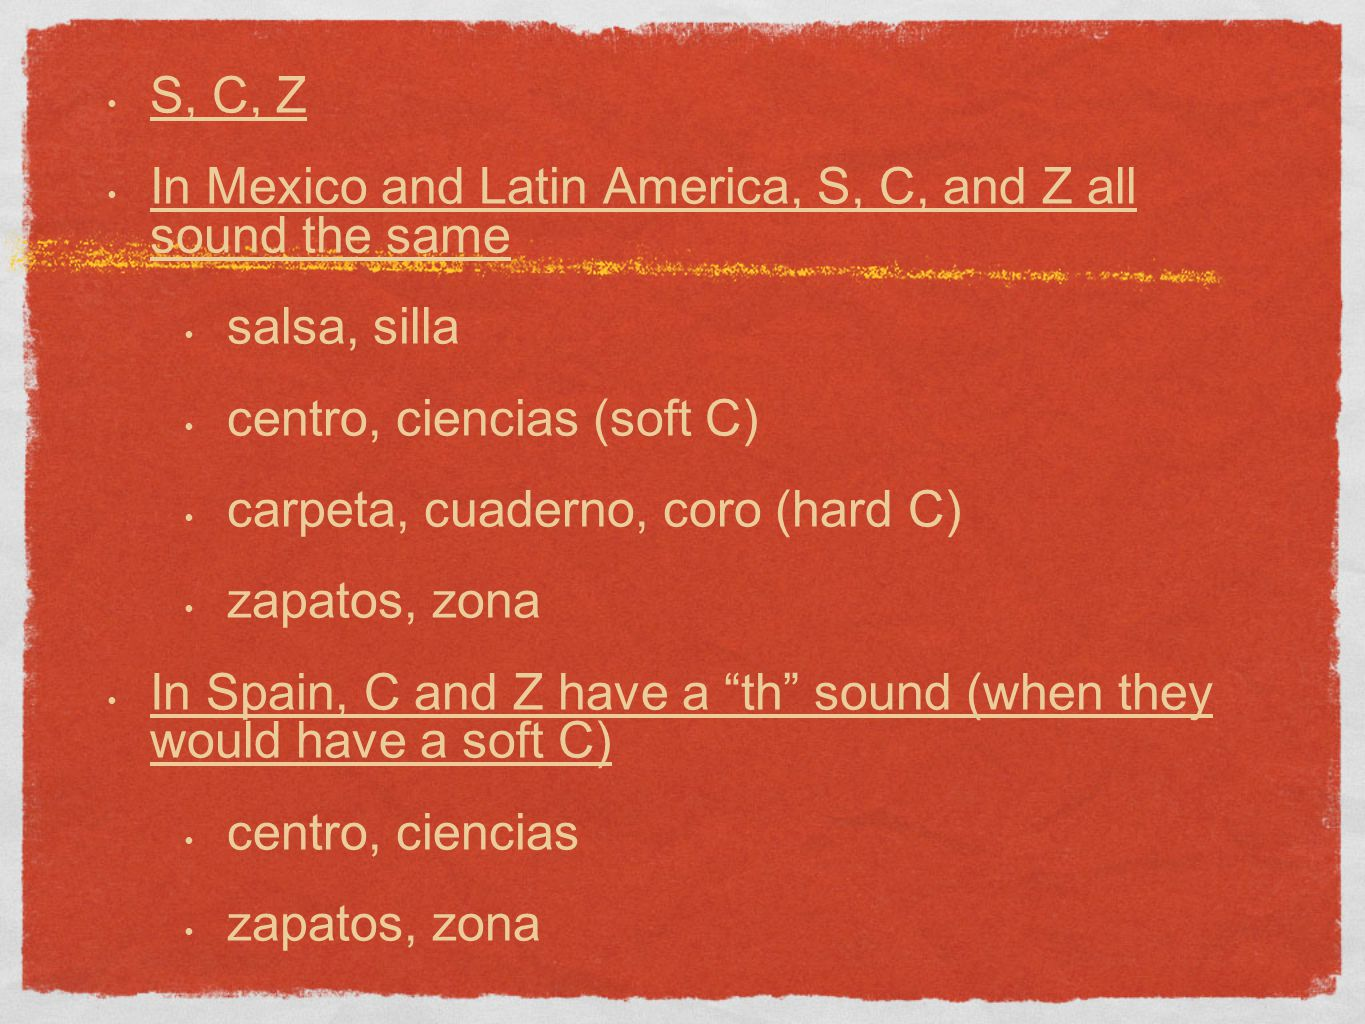 S, C, Z In Mexico and Latin America, S, C, and Z all sound the same salsa, silla centro, ciencias (soft C) carpeta, cuaderno, coro (hard C) zapatos, zona In Spain, C and Z have a th sound (when they would have a soft C) centro, ciencias zapatos, zona